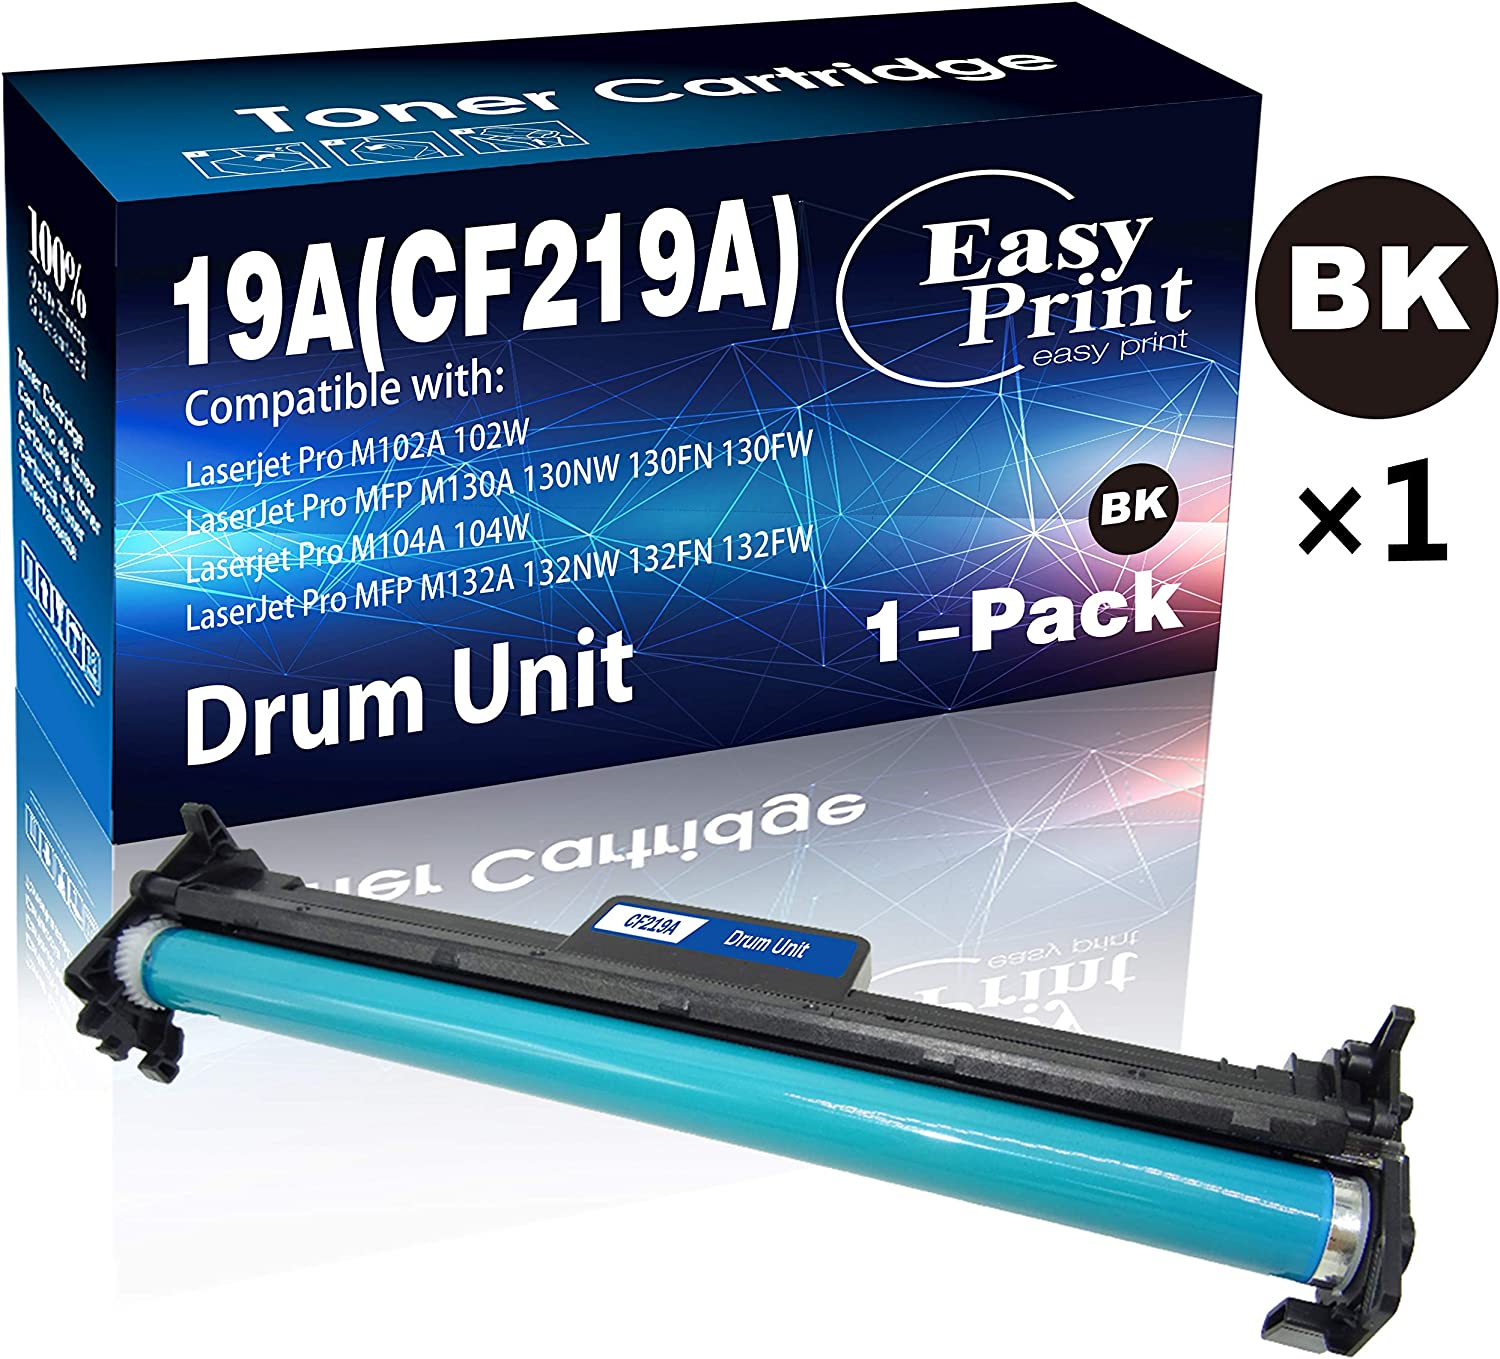 1-Pack Compatible CF219A Drum Unit 19A Imaging Unit Used for Laserjet Pro M102A M102W M104A M104W M130FW M130NW M130FN M132FW M132NW M132FN Printer, Sold by EasyPrint